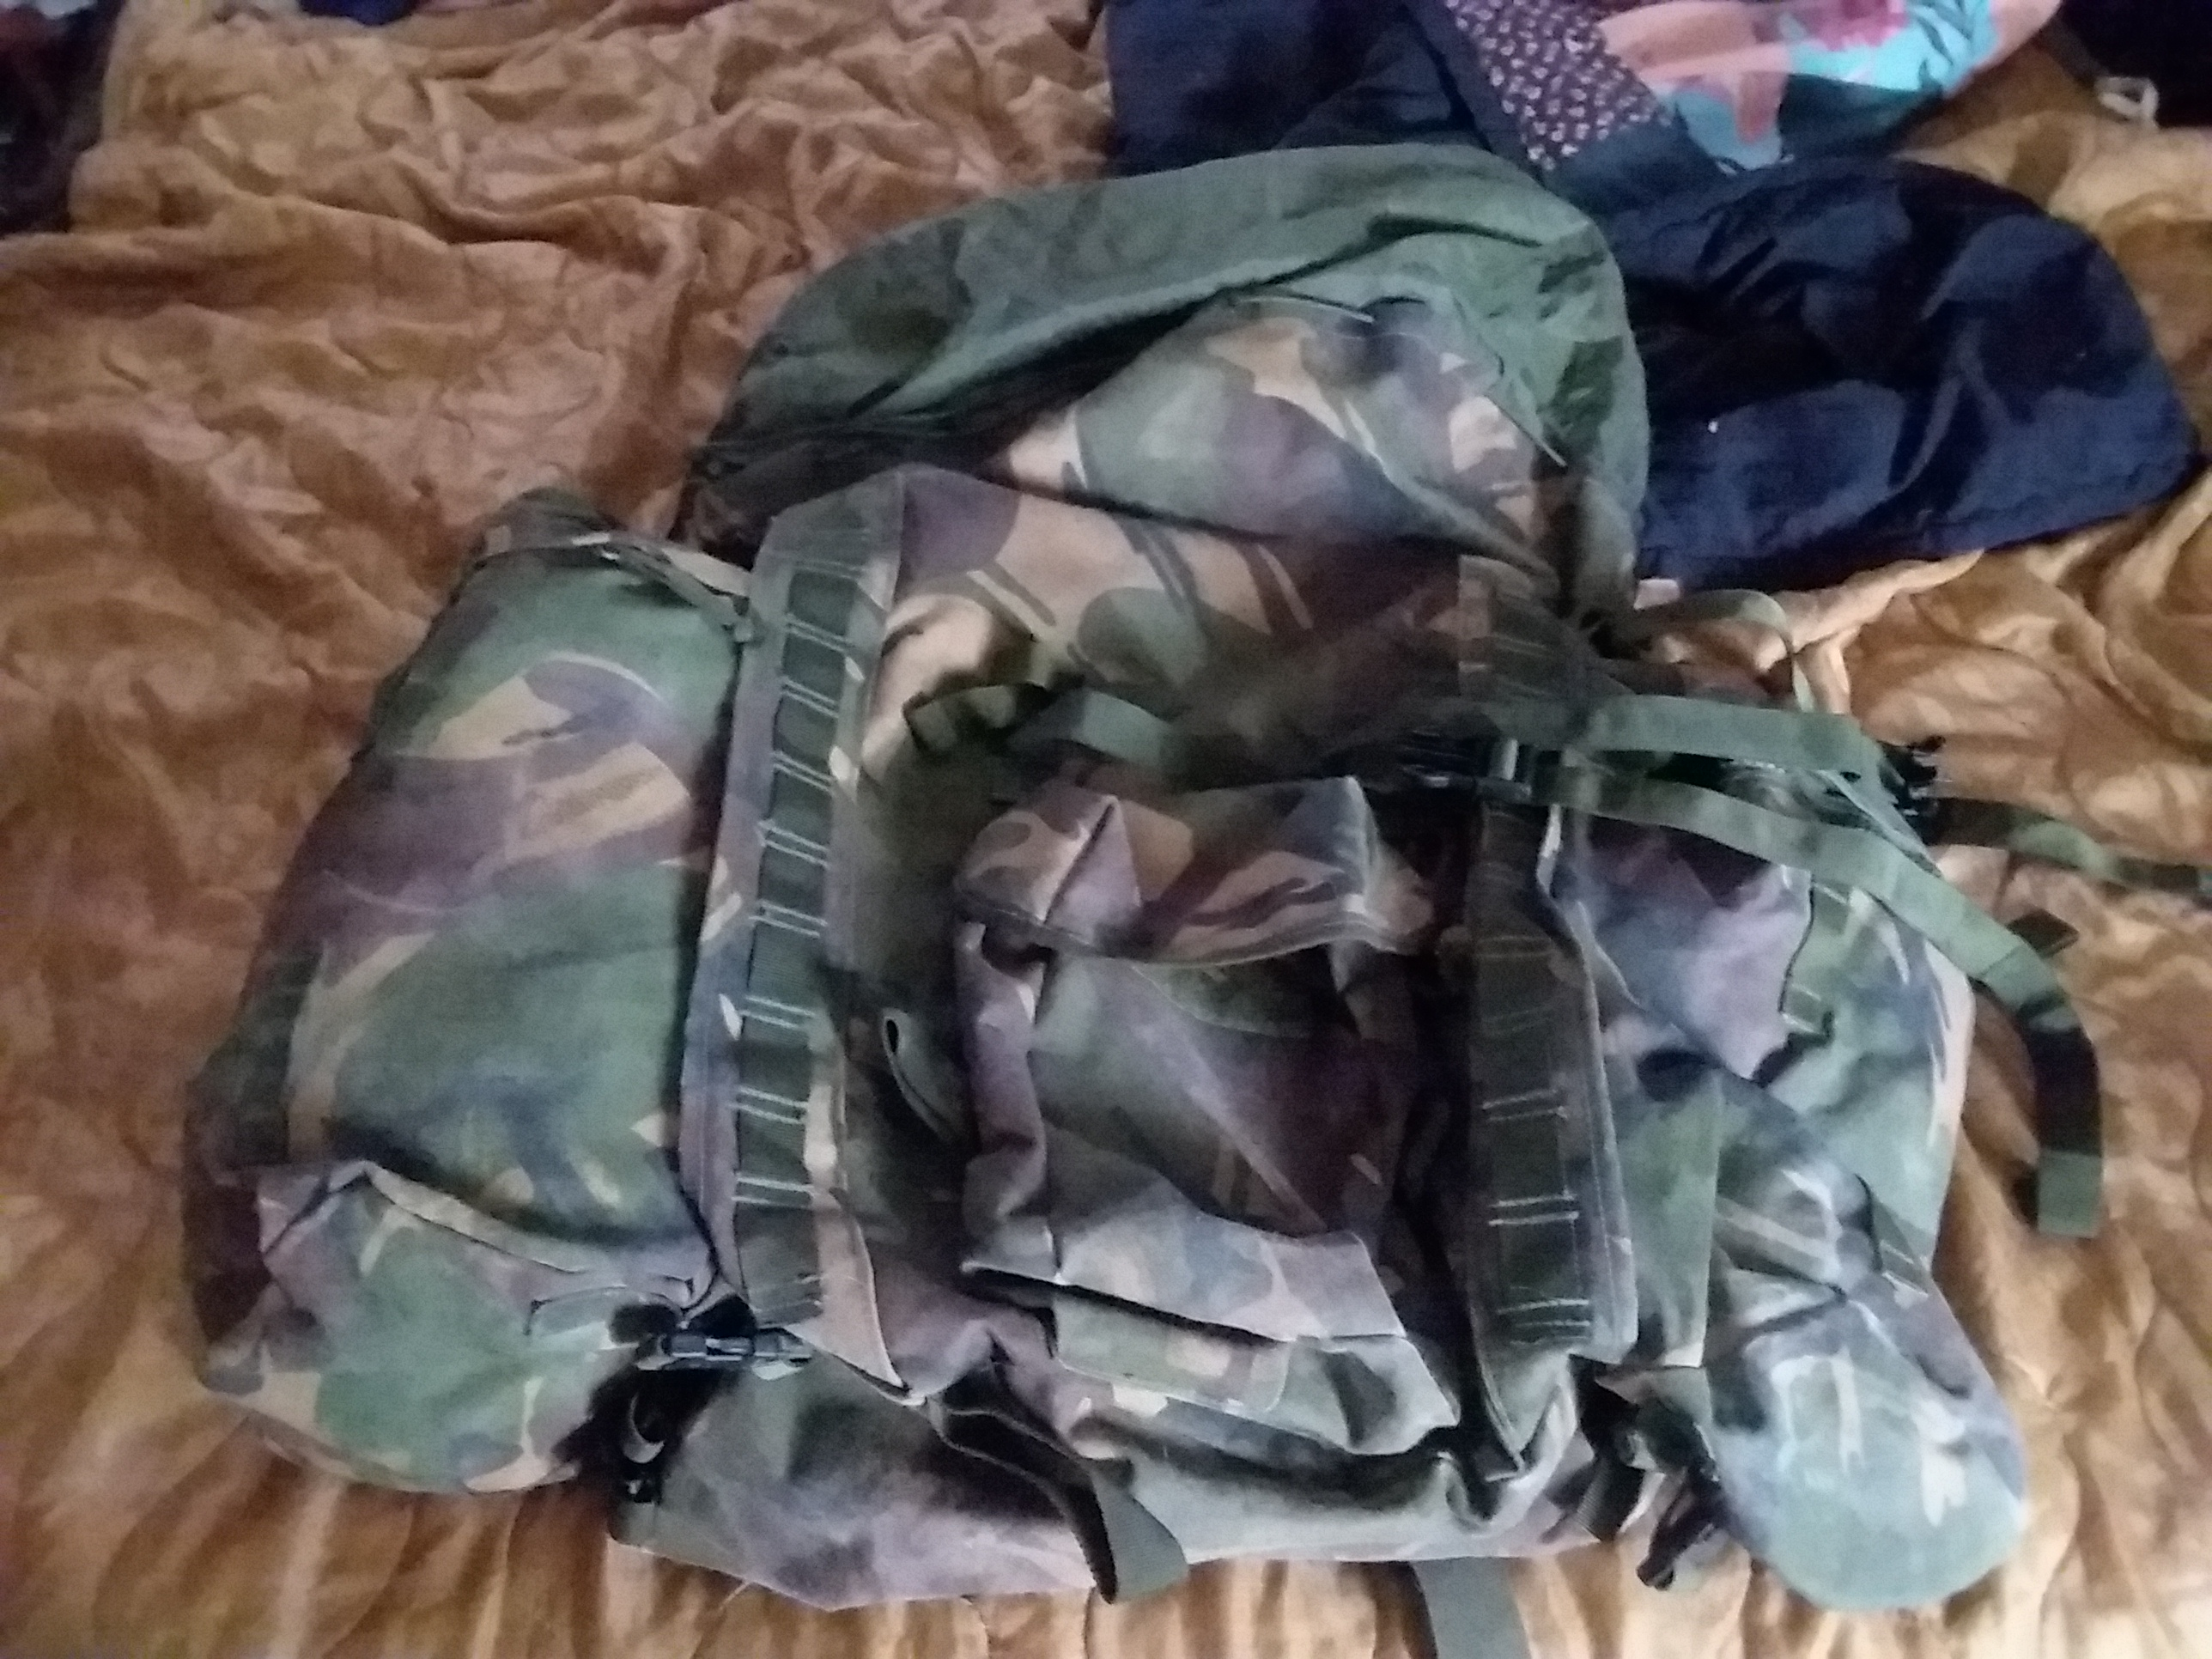 20190211_135205-jpg.48955_New to me Bergen_Backpacks & Pouches_Squat the Planet_1:01 PM